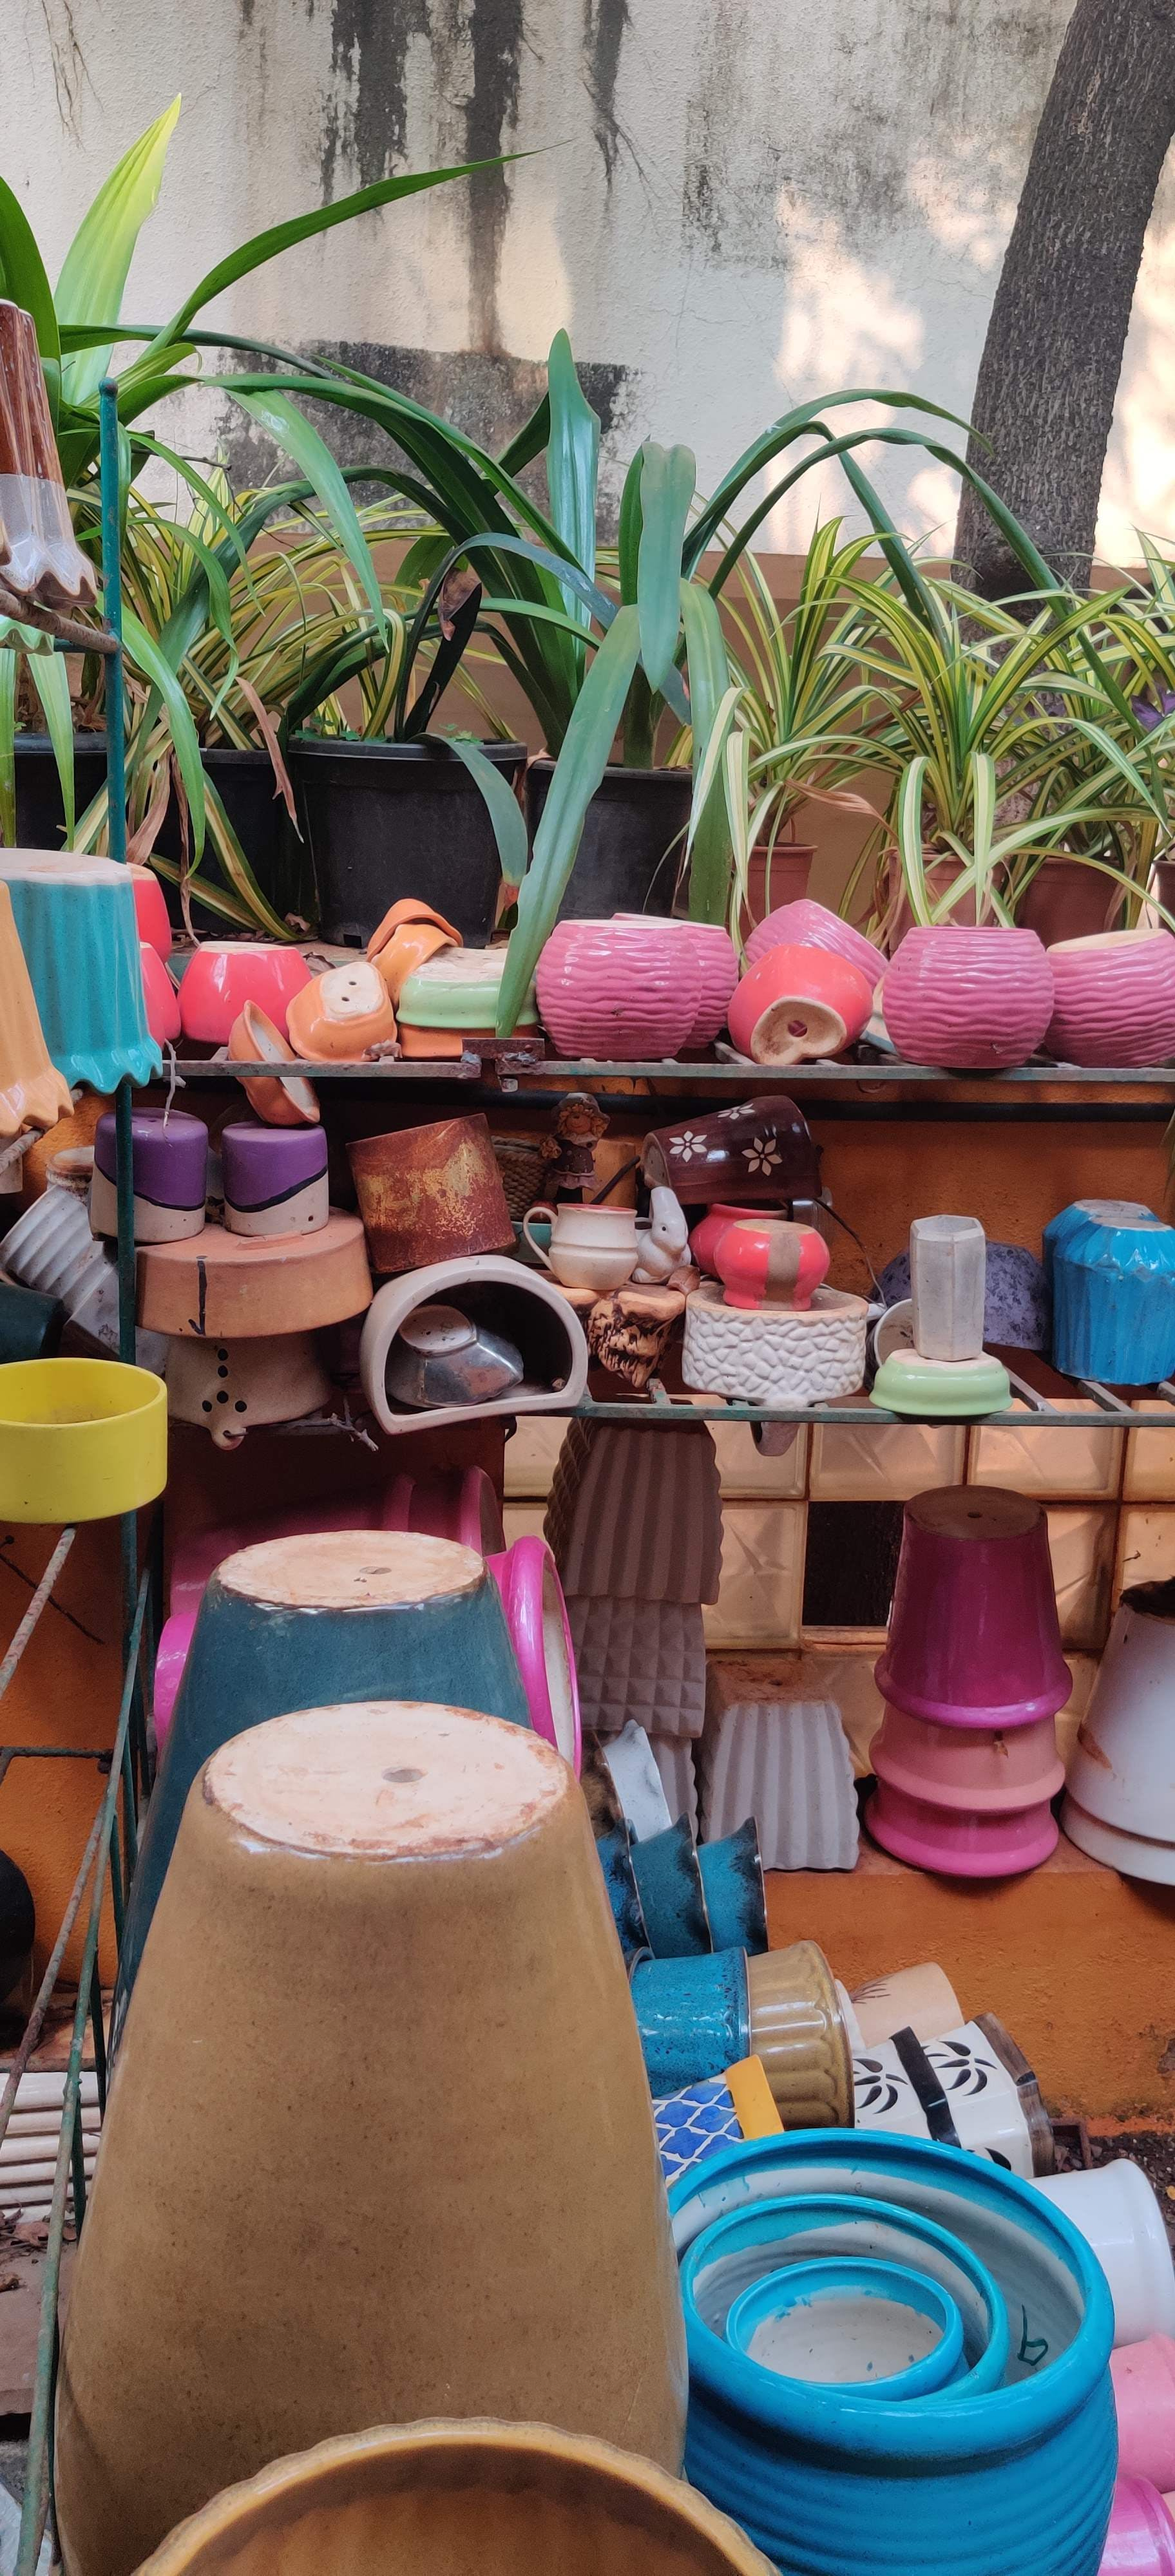 Vrishka Nursey: One Stop Shop For Plants For Home & Decor, Gifts, At An Affordable Price!